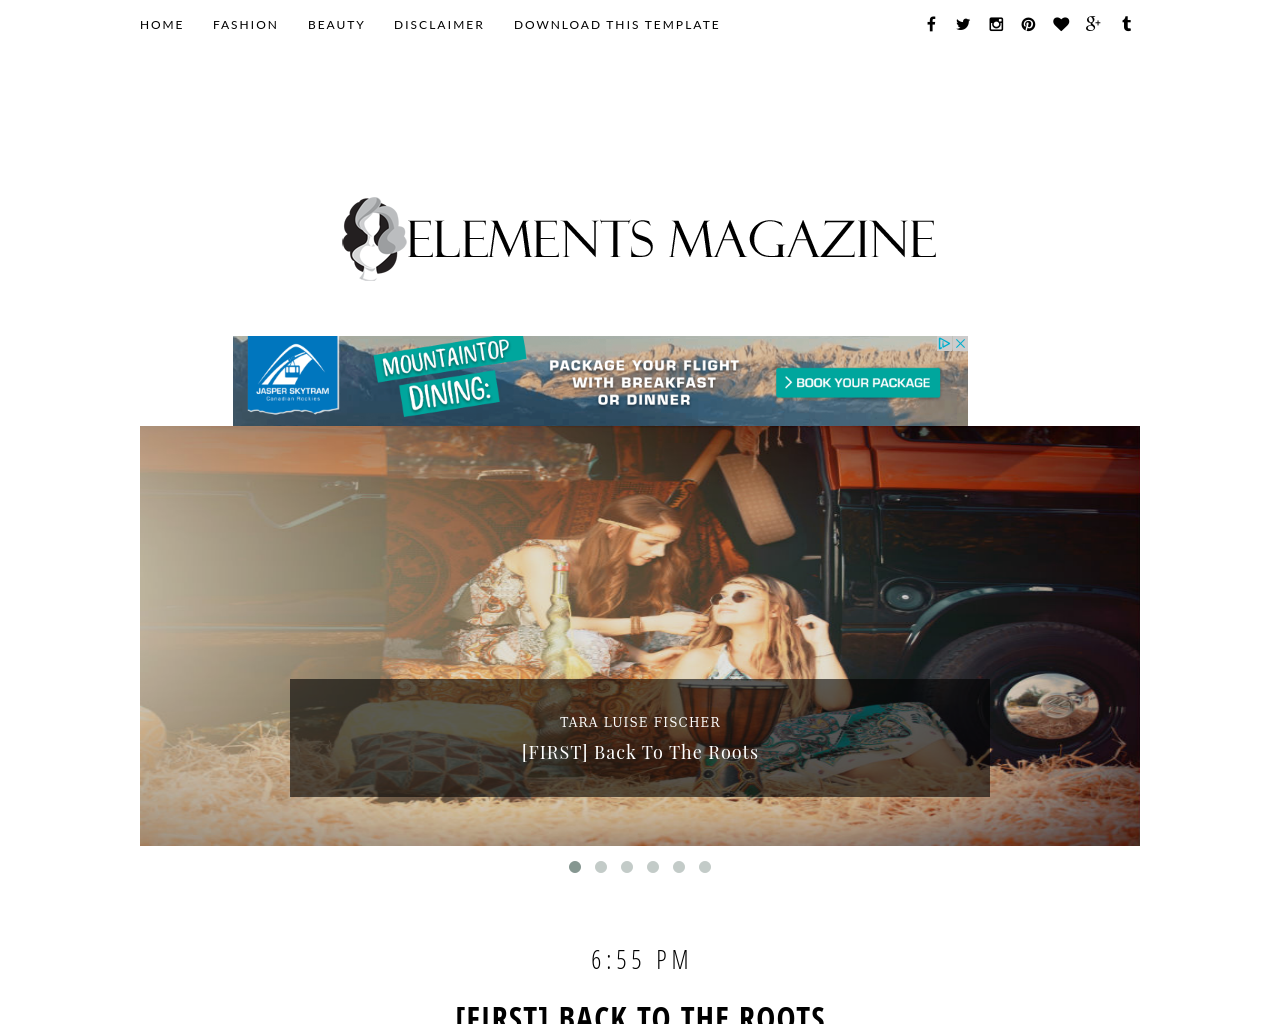 Elements-Magazine-Advertising-Reviews-Pricing